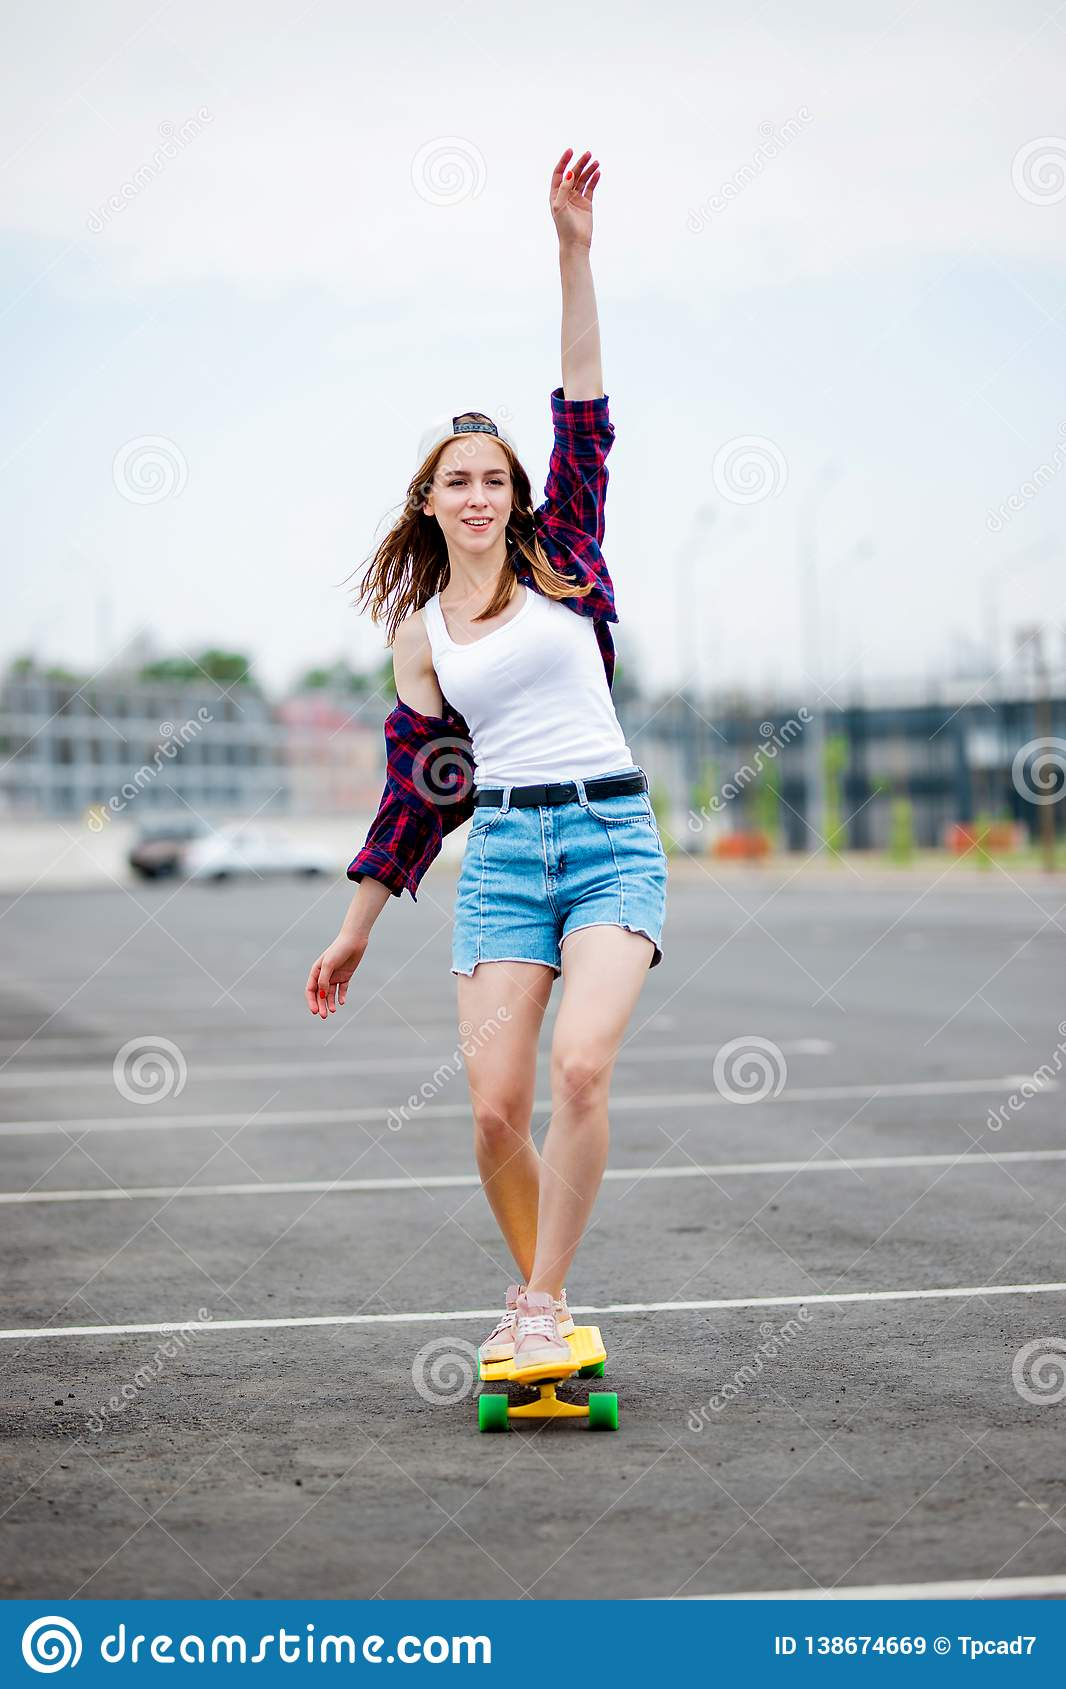 A beautiful smiling blond girl wearing checkered shirt, white cap and denim shorts is balancing on the yellow longboard